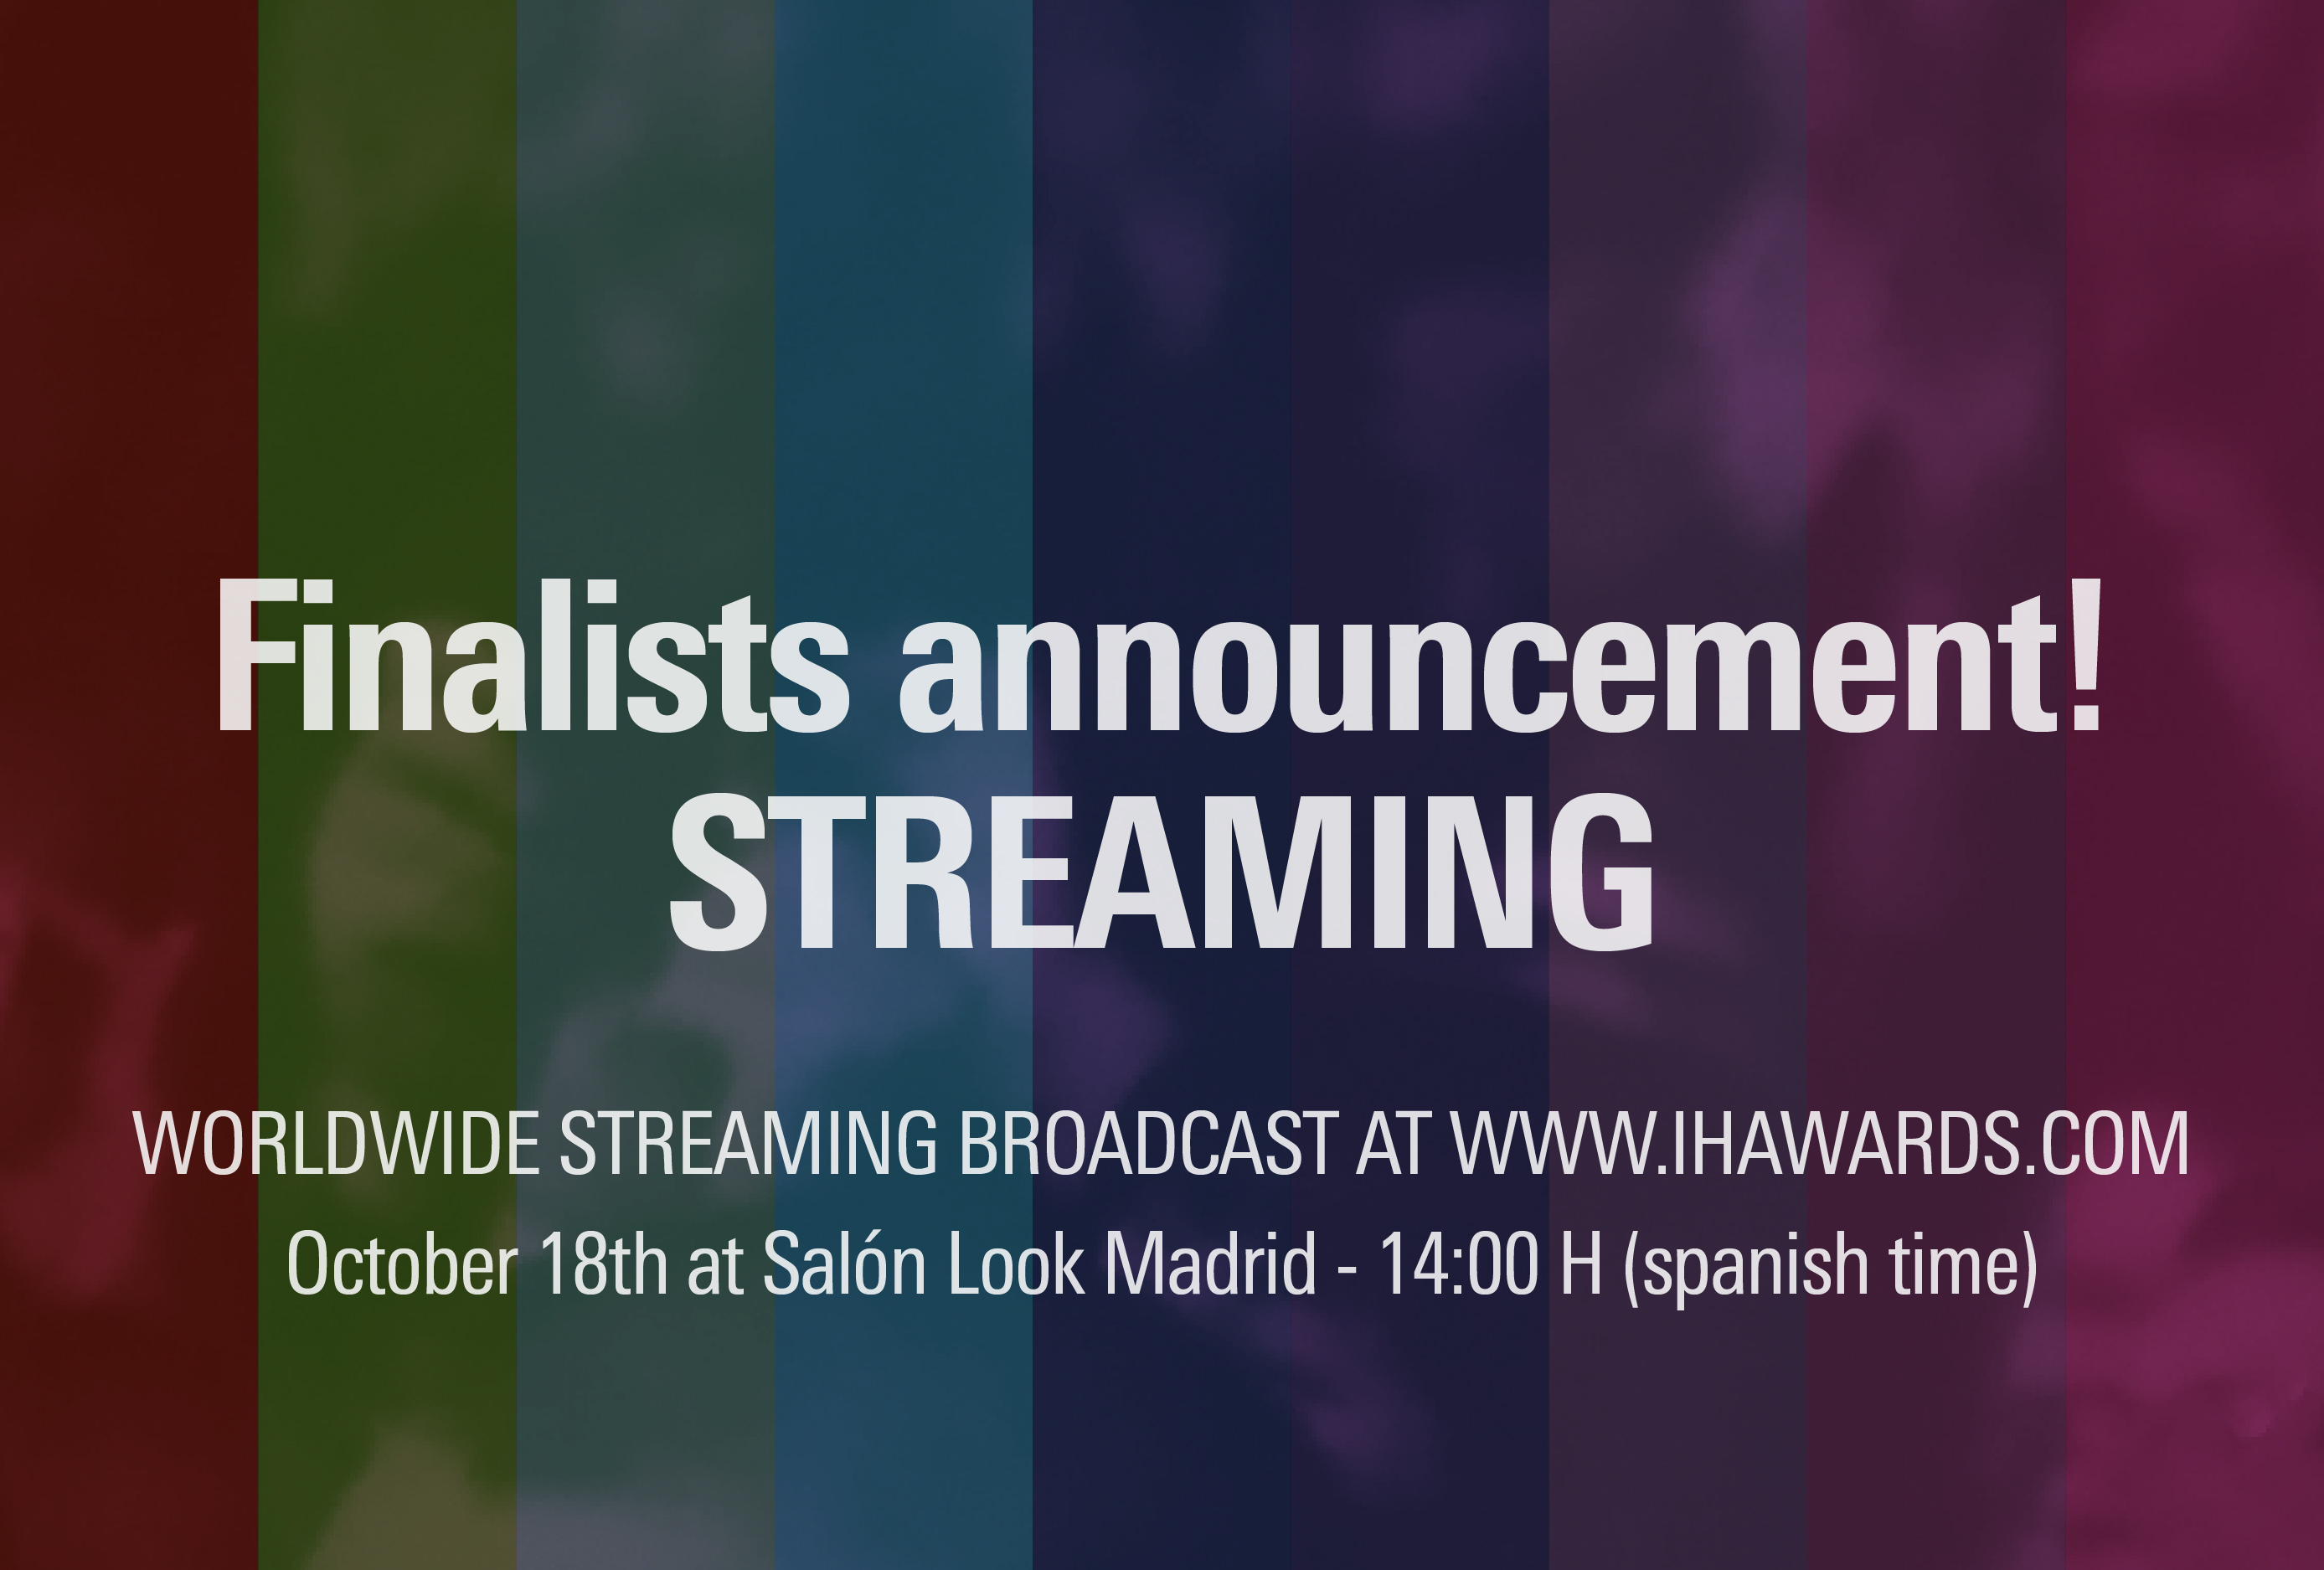 The International Hairdressing Awards will announce the finalists of their second edition with streaming broadcast